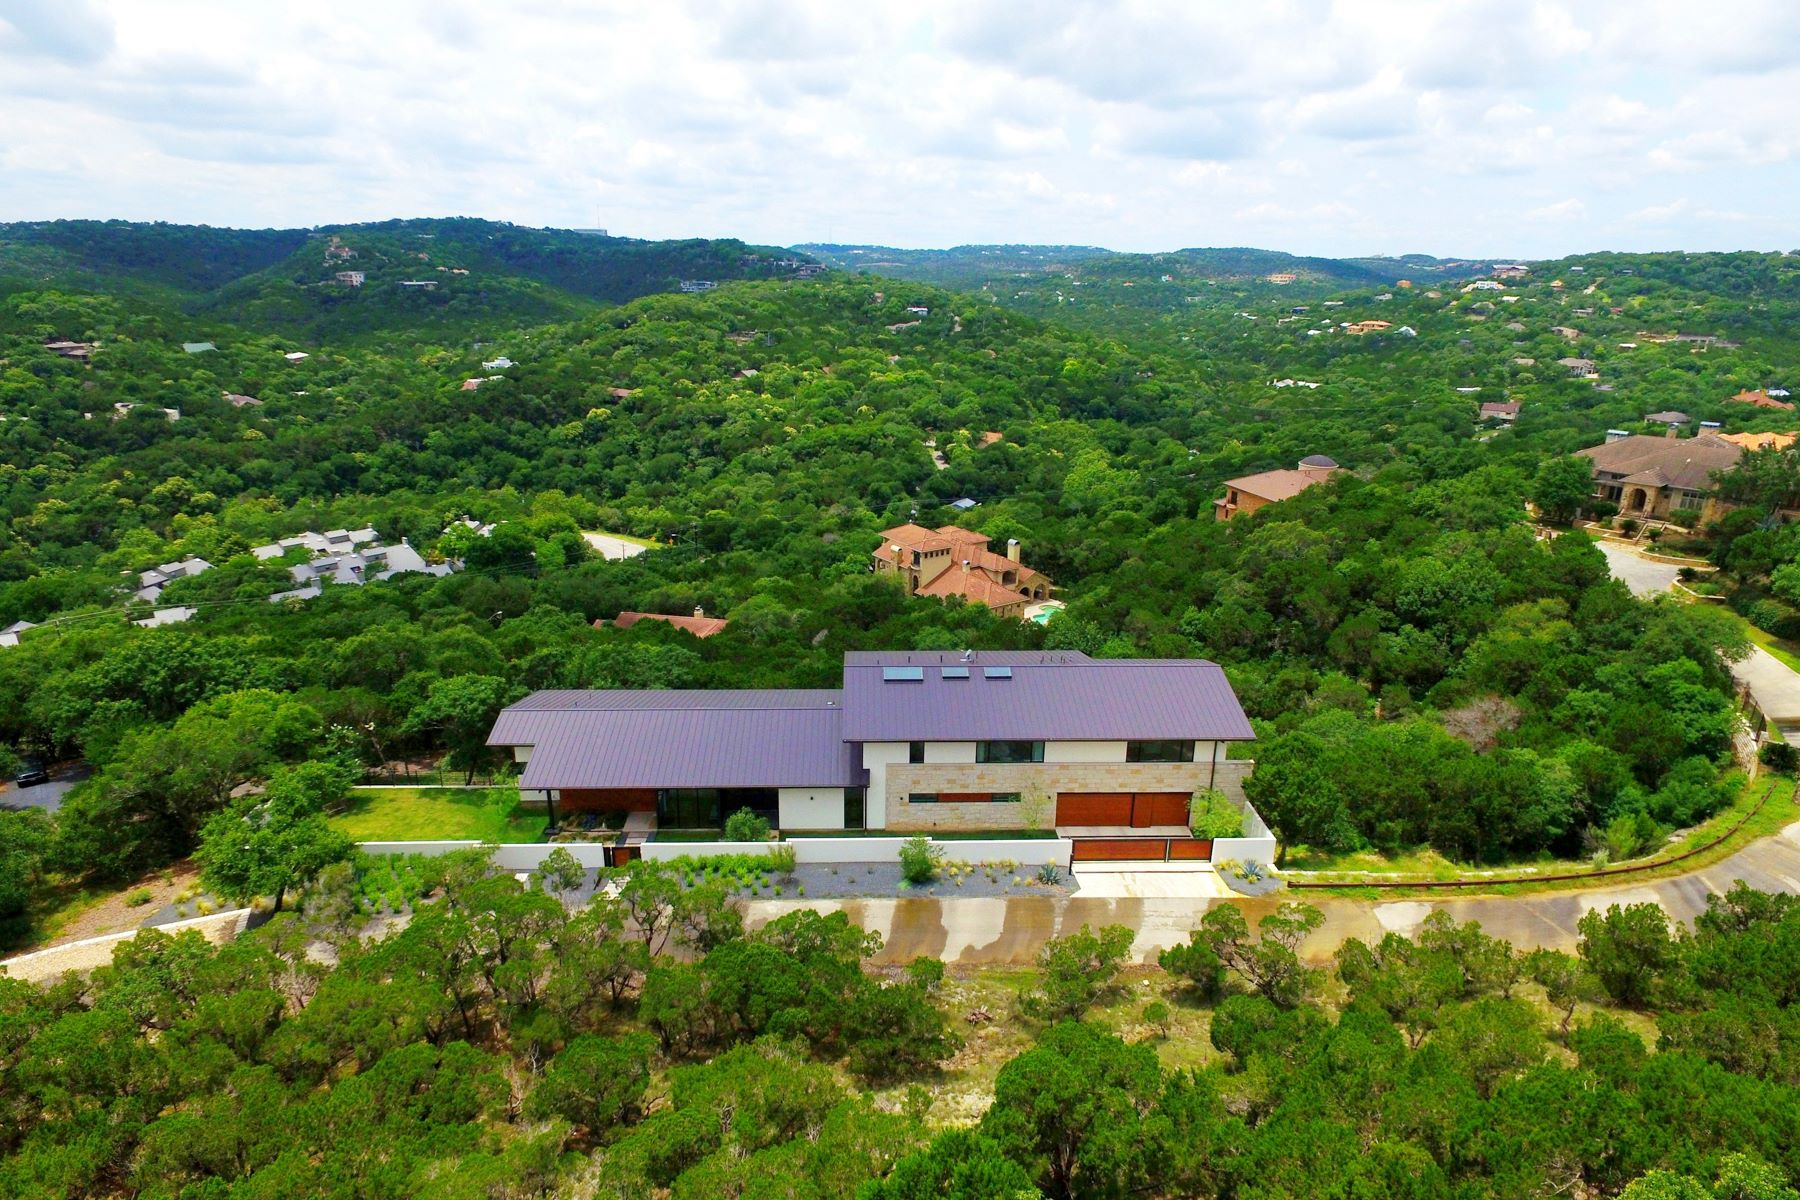 Additional photo for property listing at Exquisite Hilltop Modern in Westlake Hills 1438 Mount Larson Austin, Texas 78746 Estados Unidos